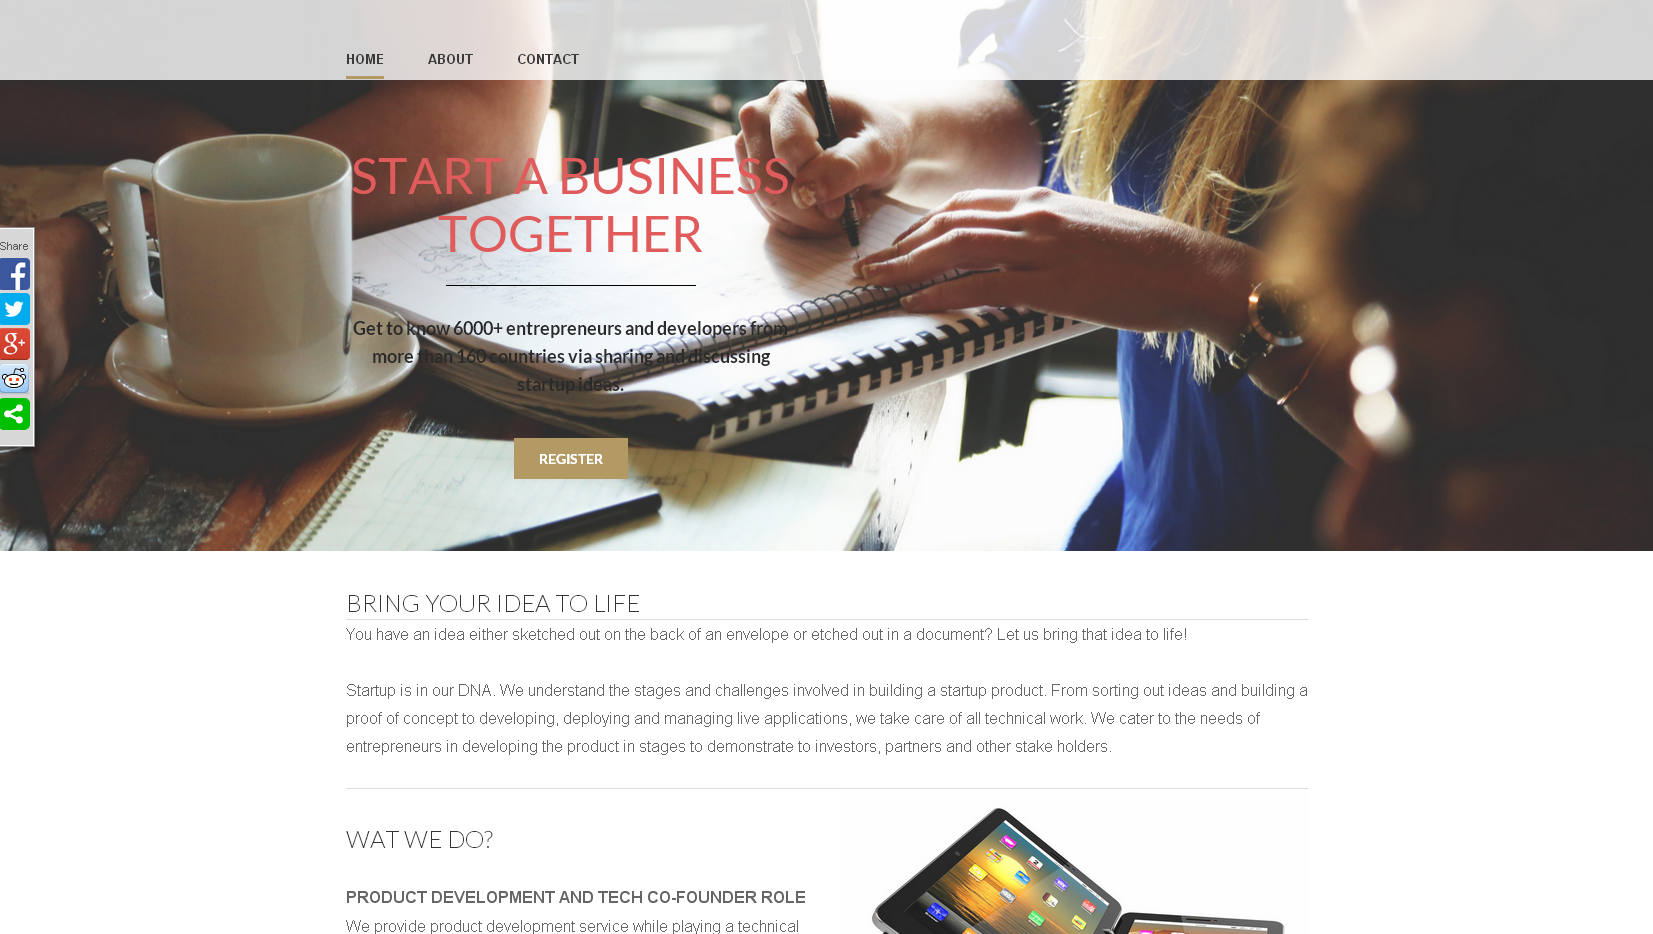 Corporate theme ideally suites for Startup